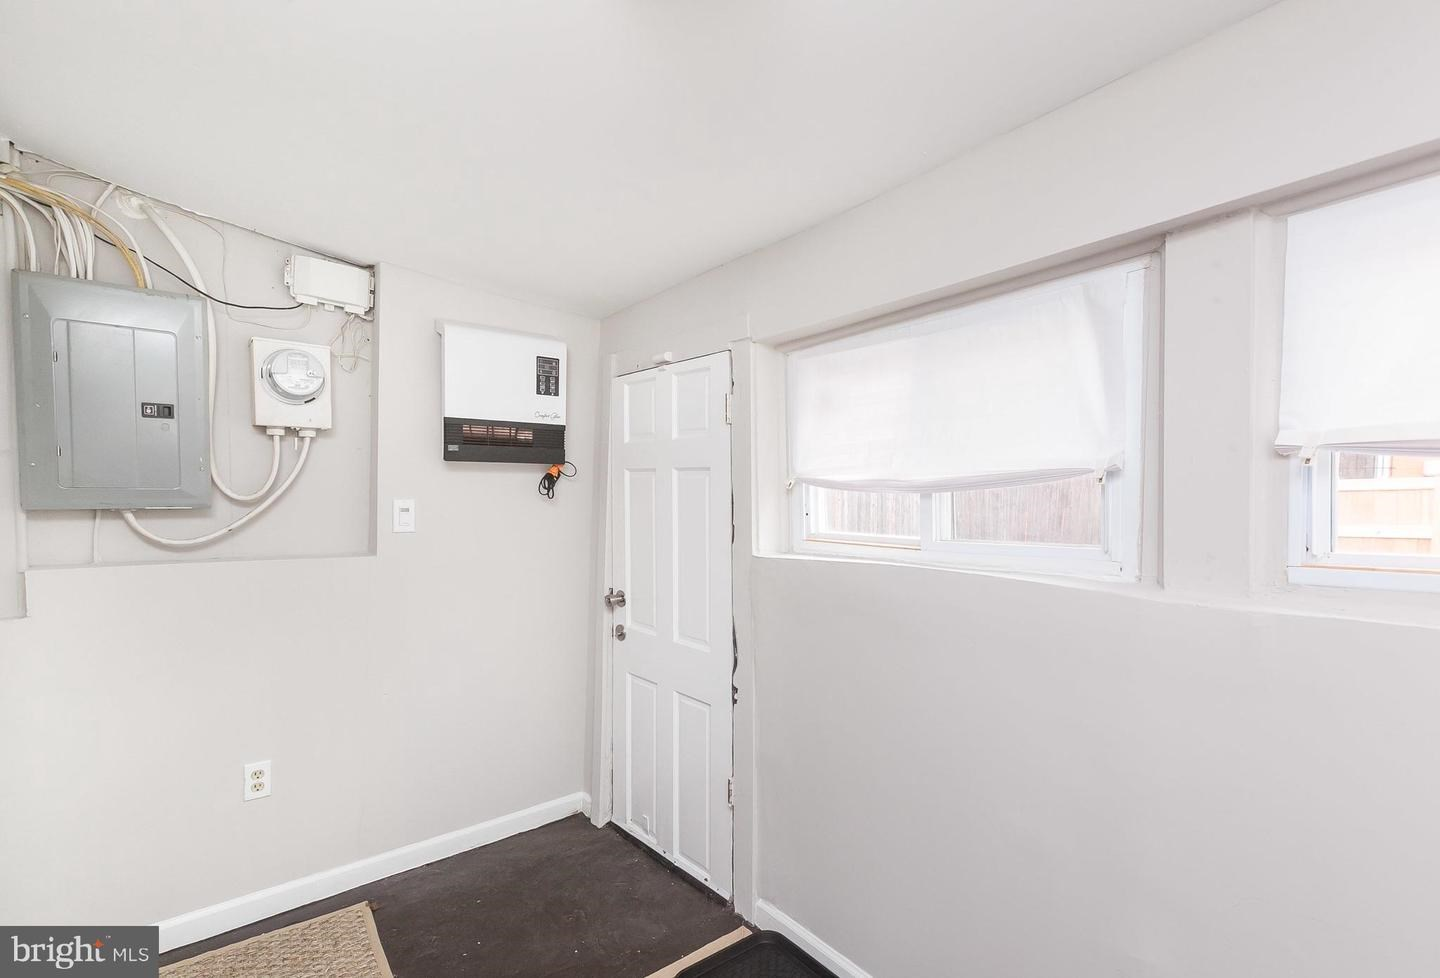 1024 W Cross Street  Baltimore, MD 21230 is Back on the Market!